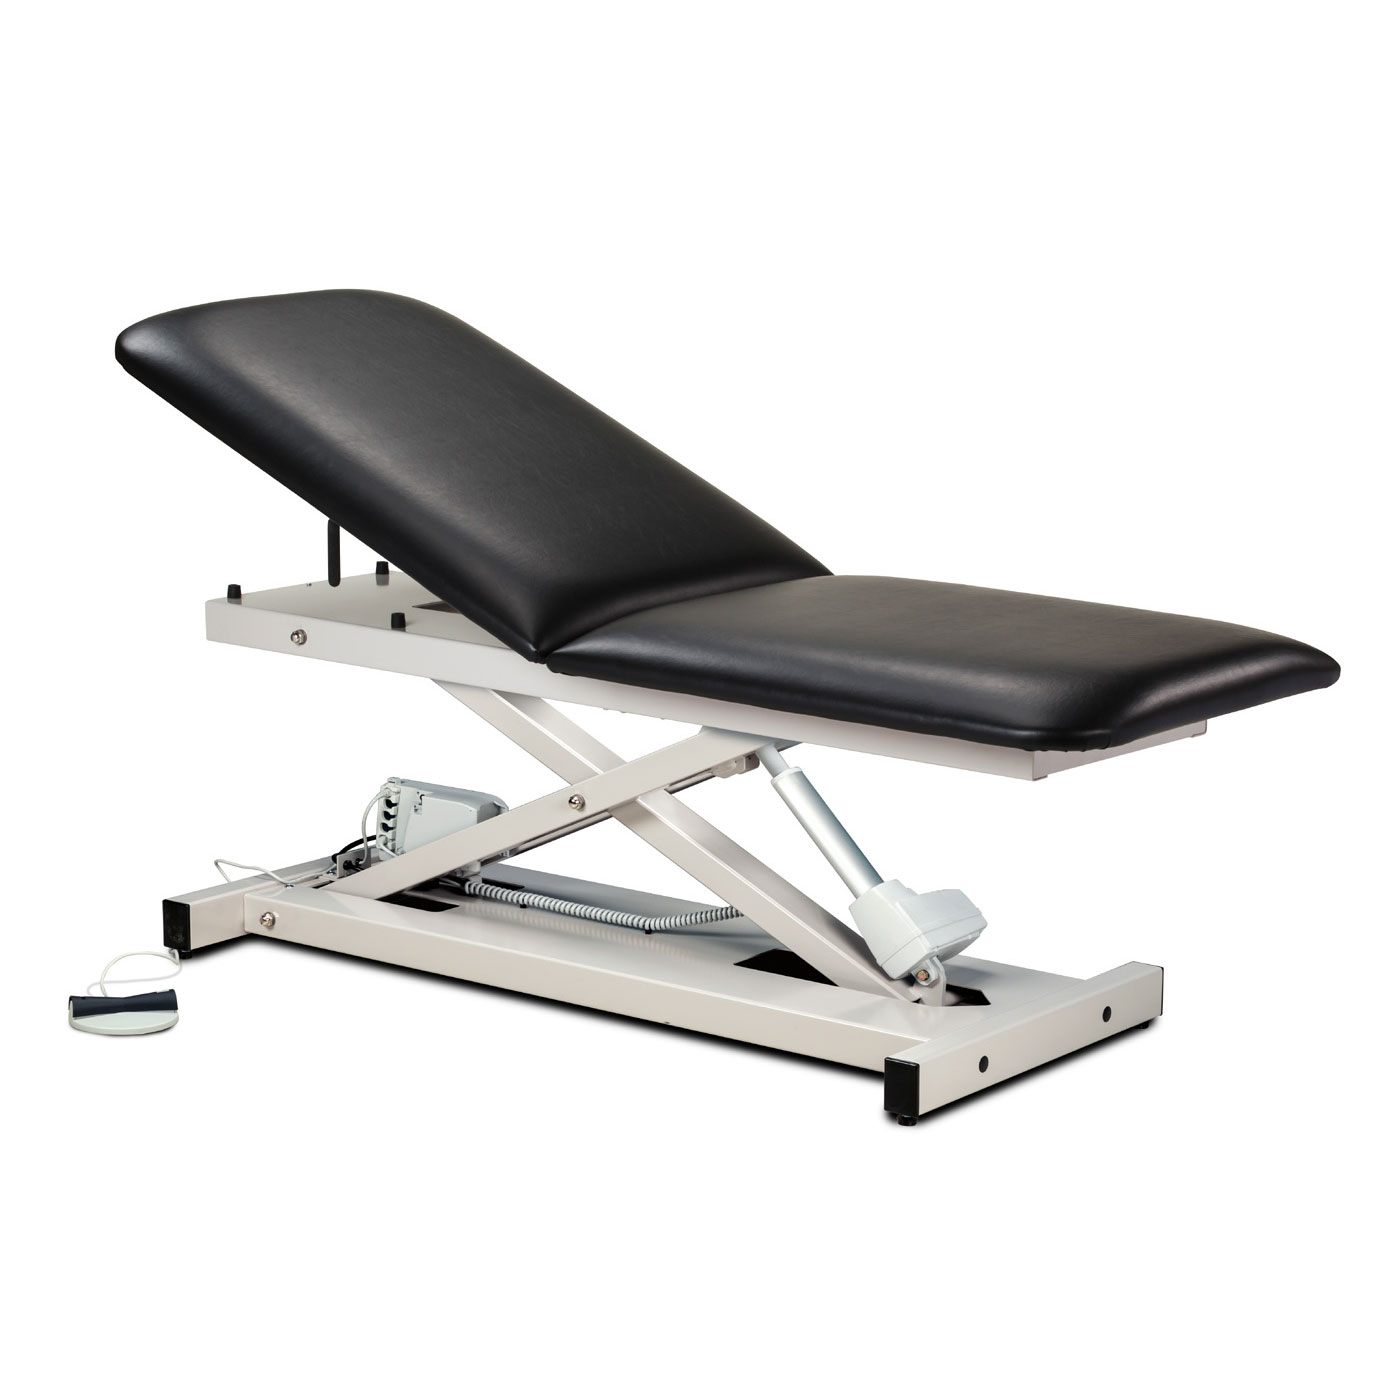 Clinton open base power table with adjustable backrest